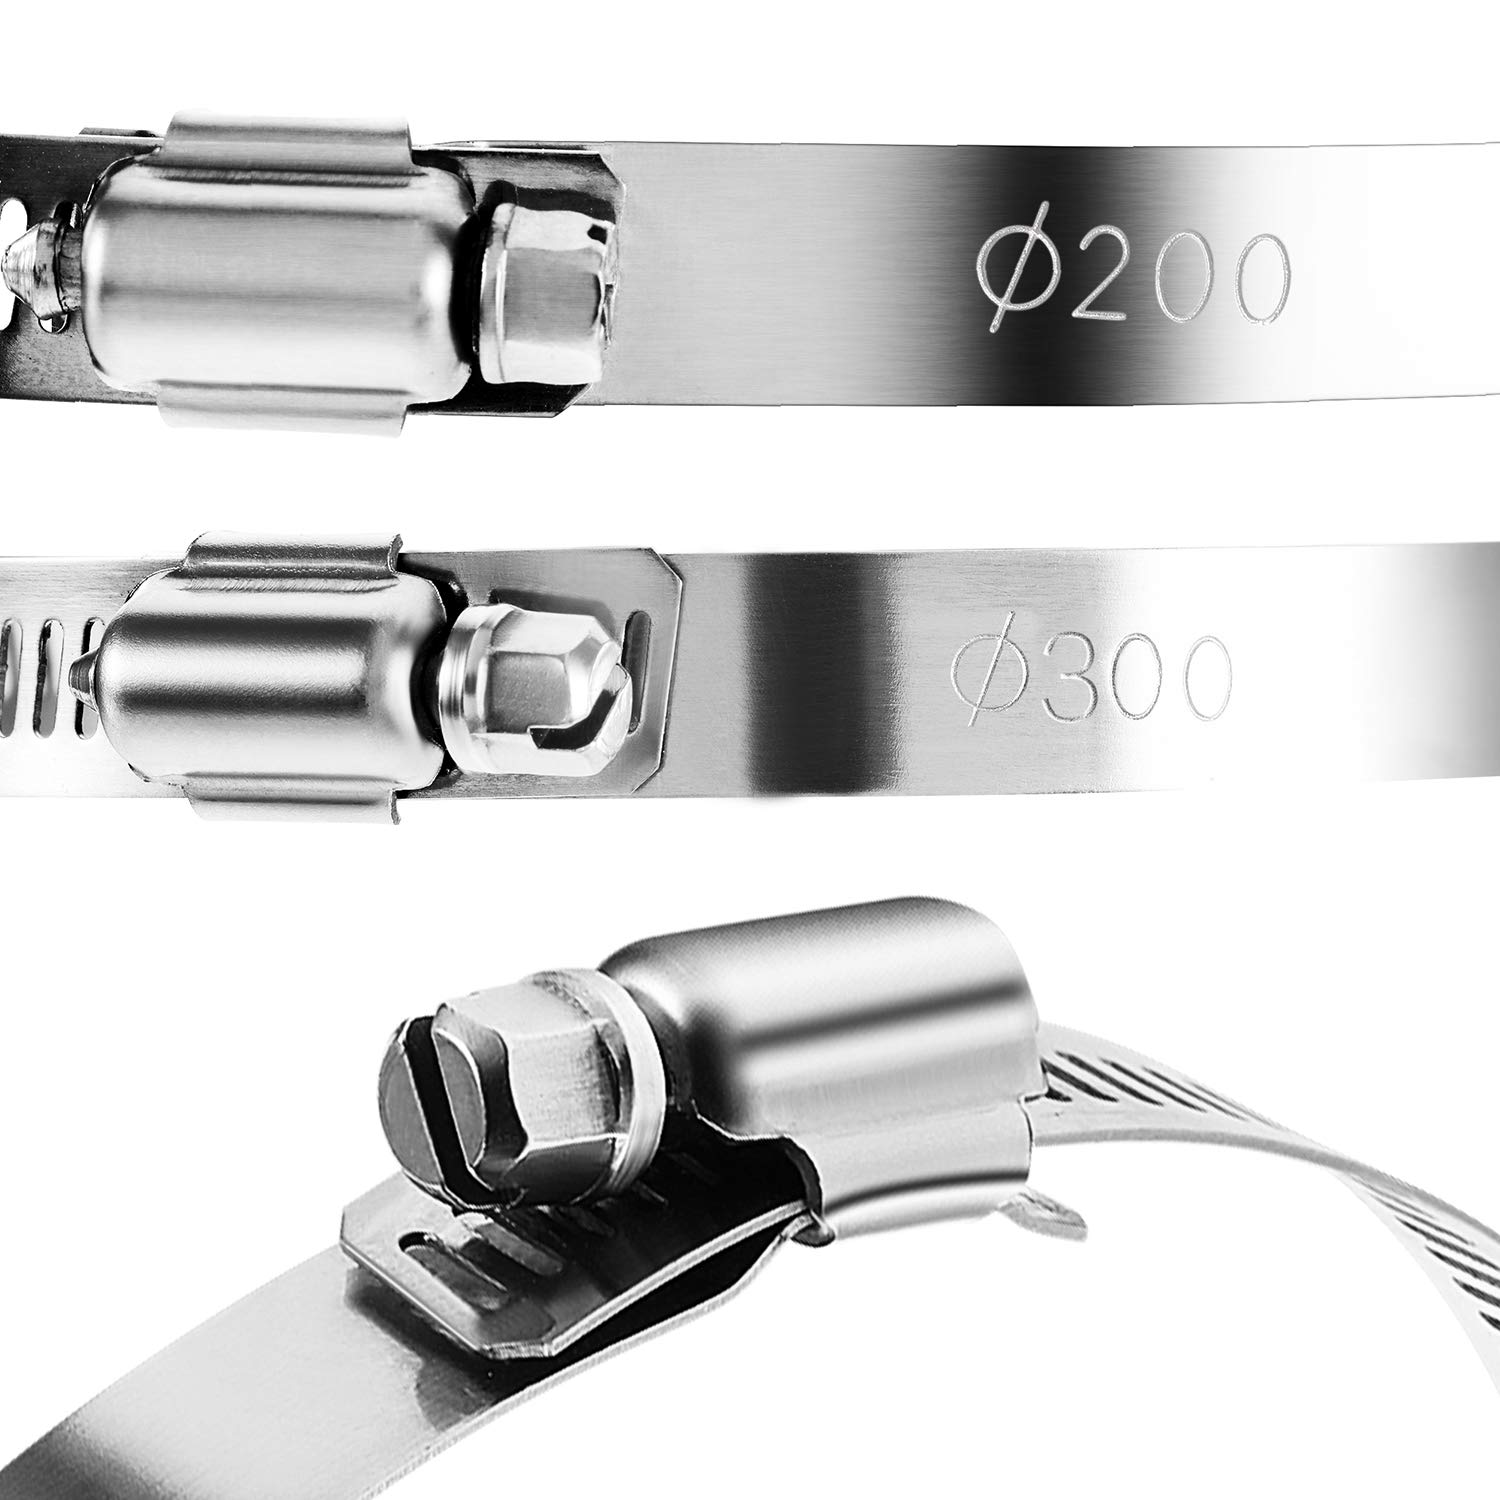 Boao 4 Pieces Adjustable 304 Stainless Steel Duct Clamps Hose Clamp (8 and 12 Inch) by Boao (Image #4)